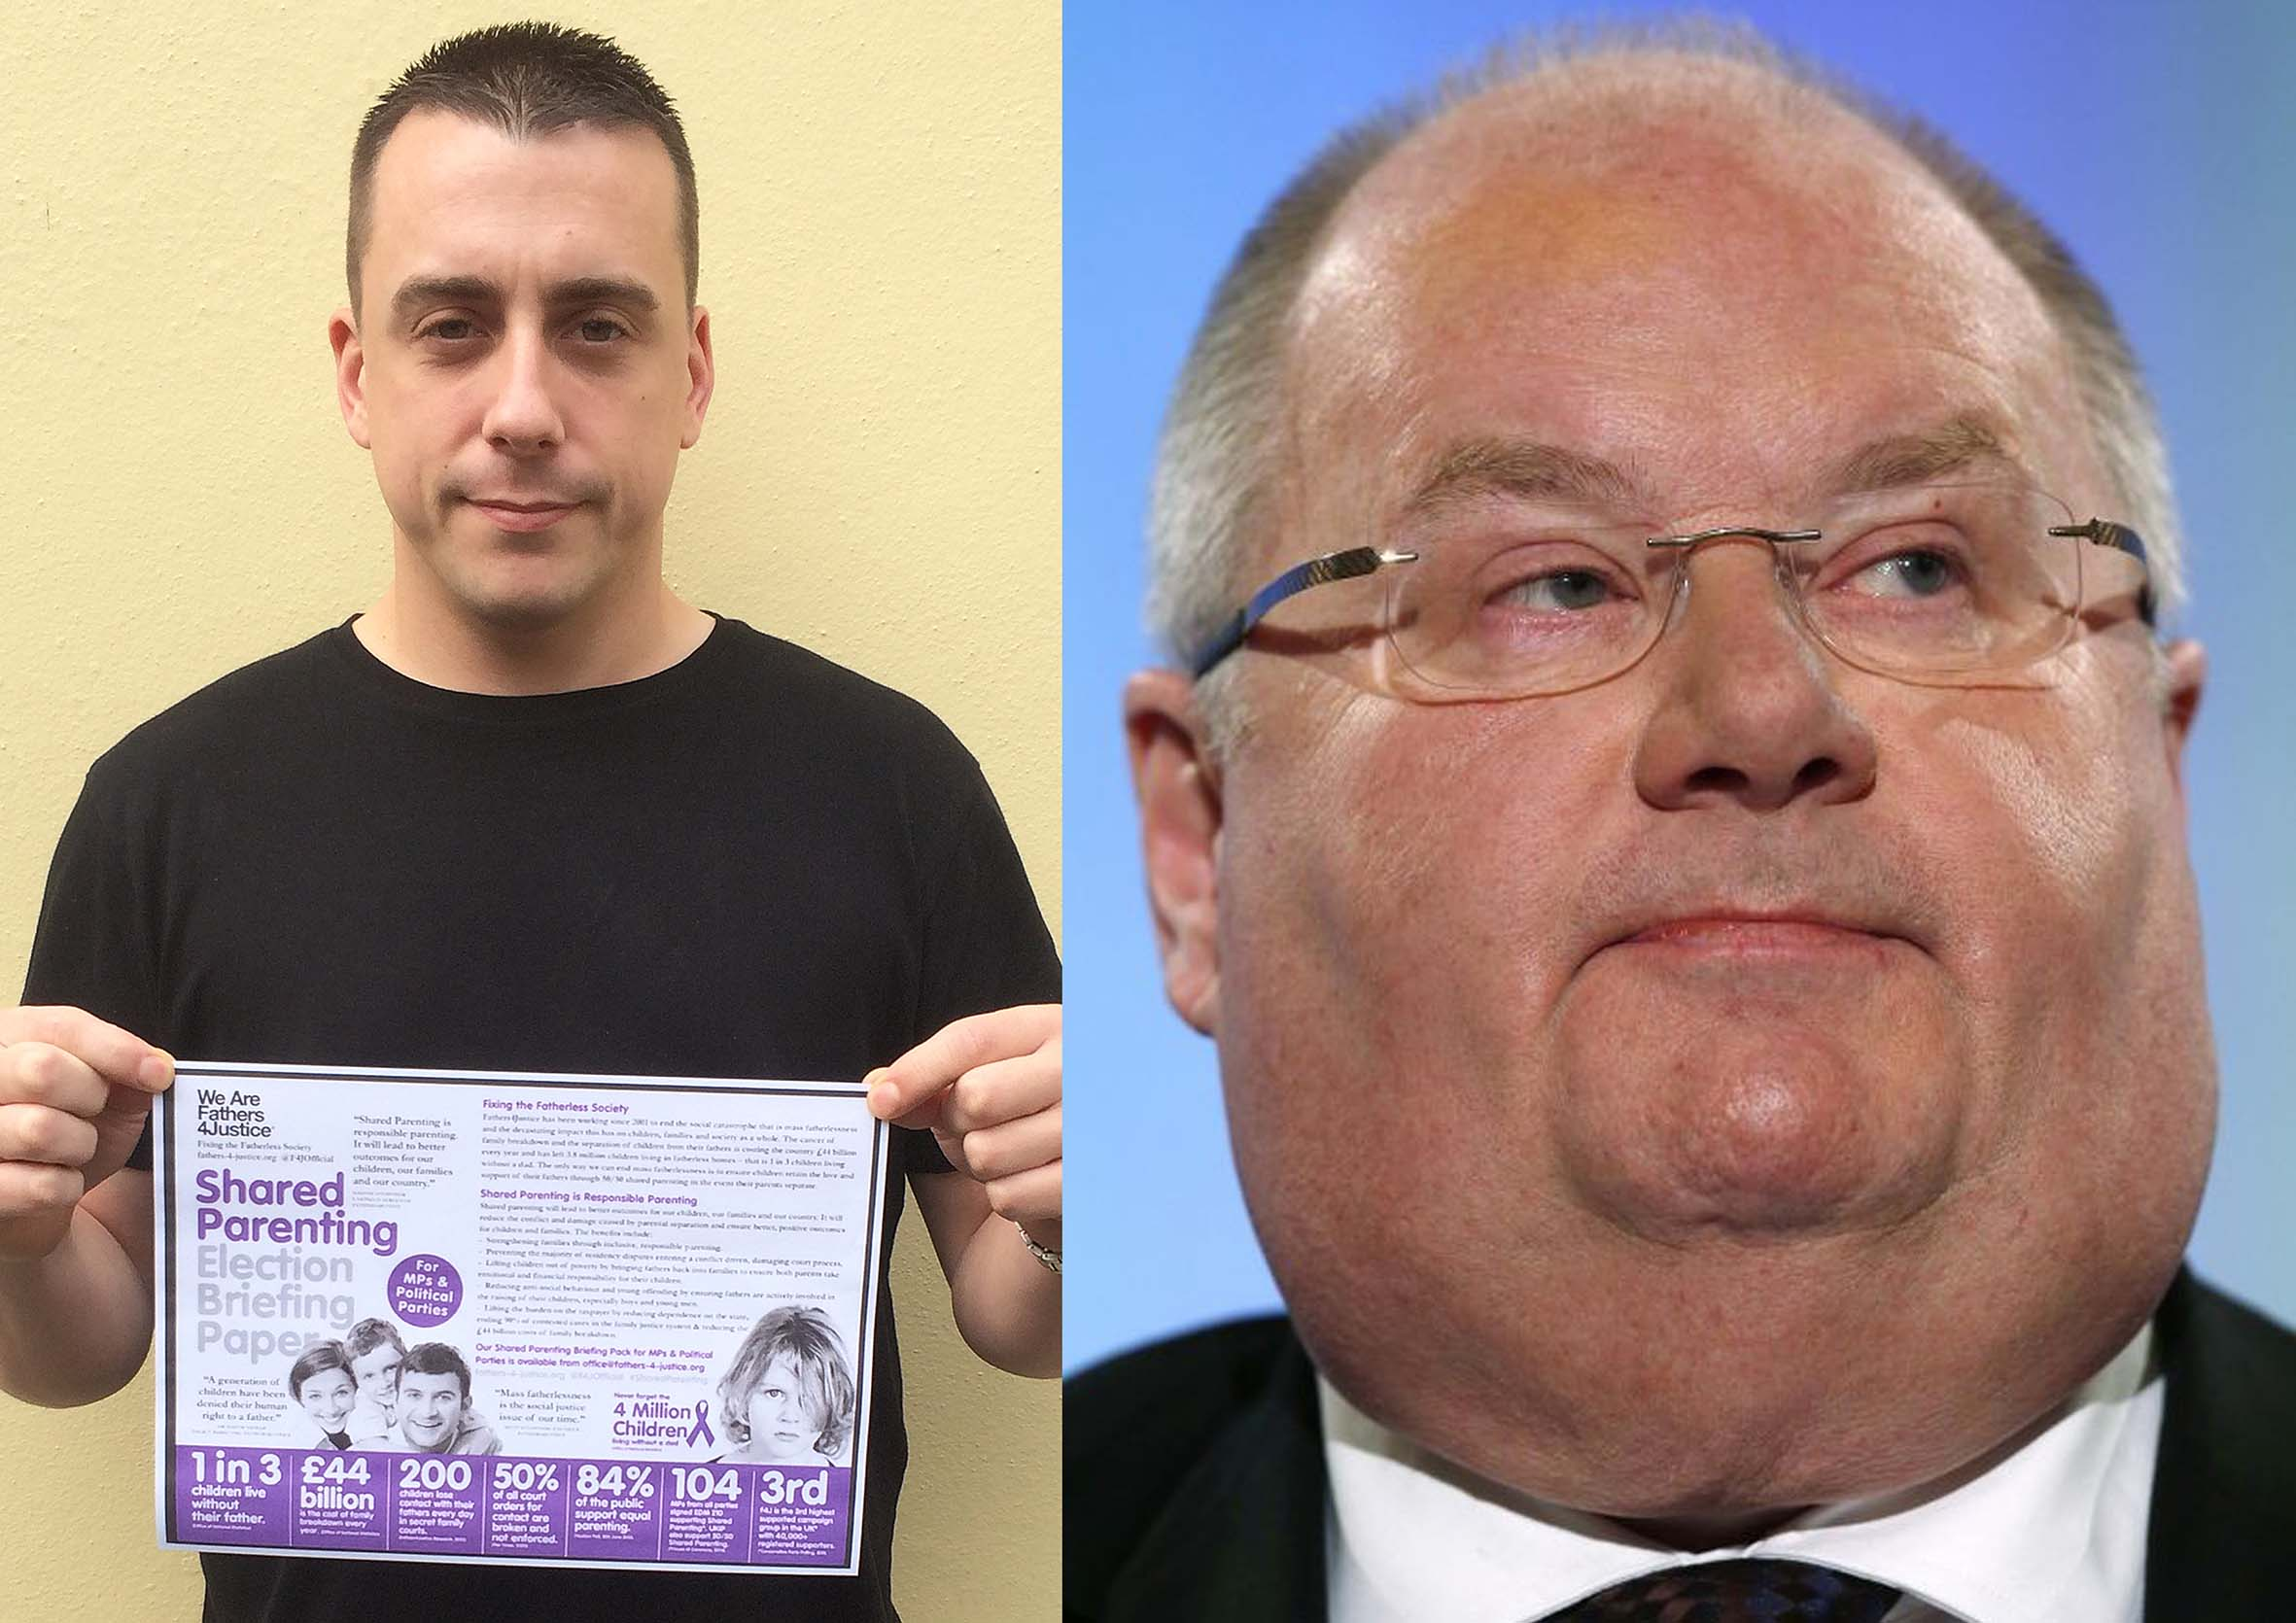 adam-lowe-eric-pickles